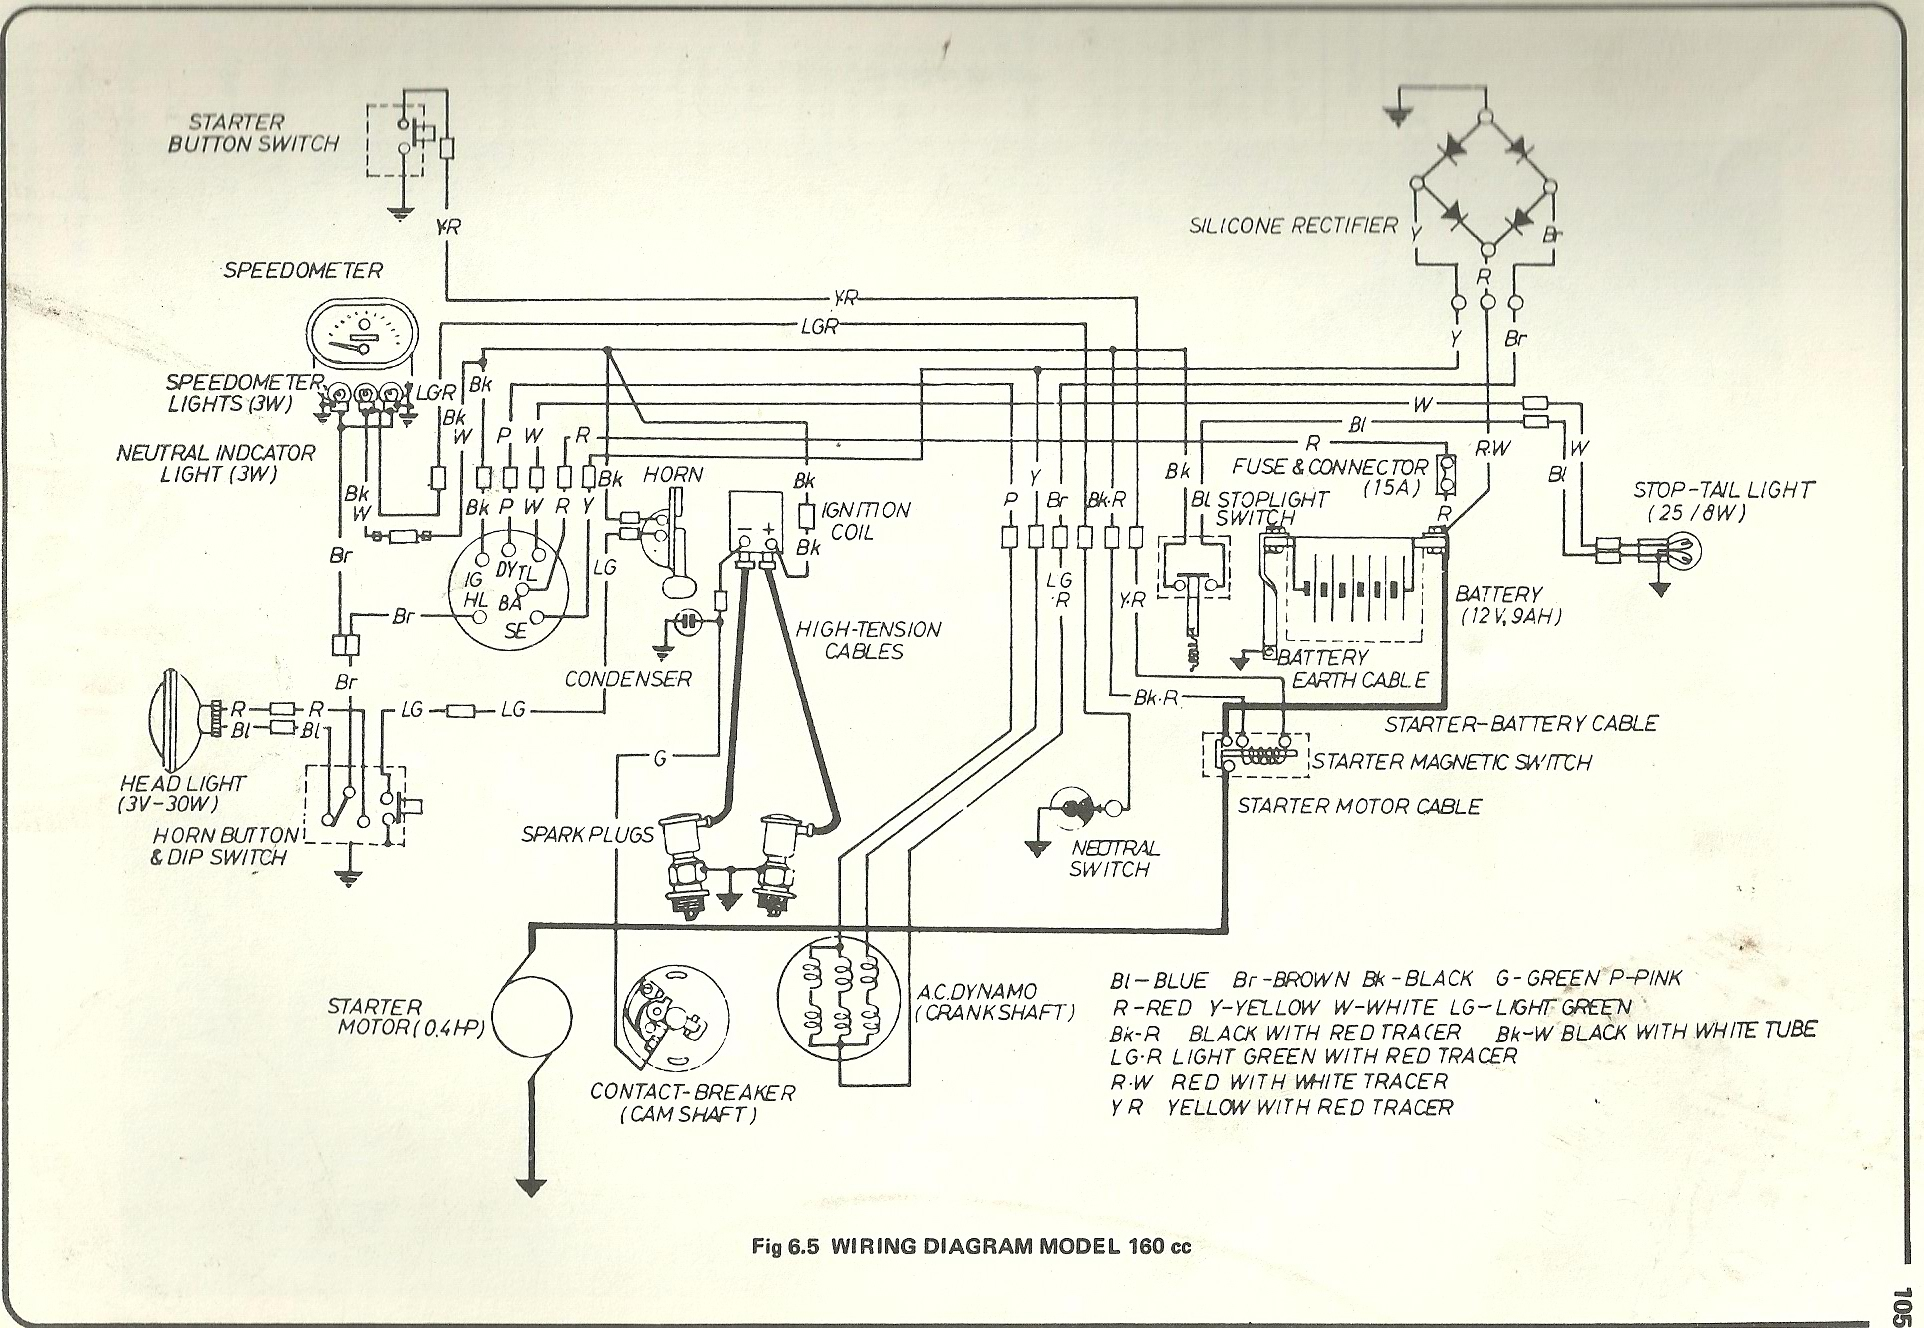 hight resolution of cb750 f1 wiring diagram manual e book cb750 f1 wiring diagram